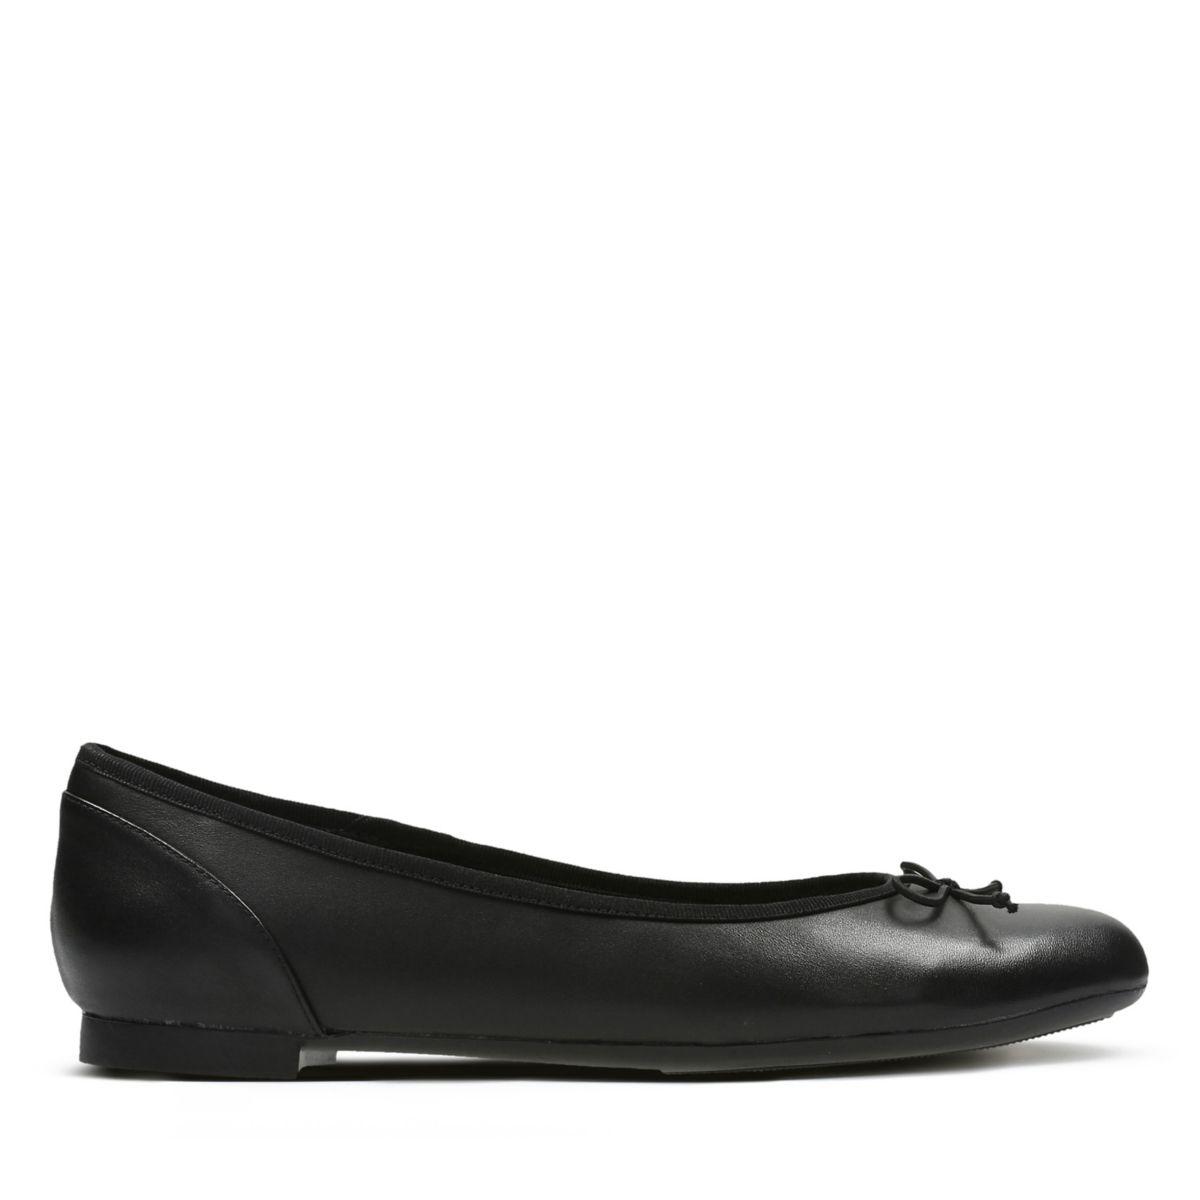 Wide Fit Smart Shoes Black - Black Silver Street London